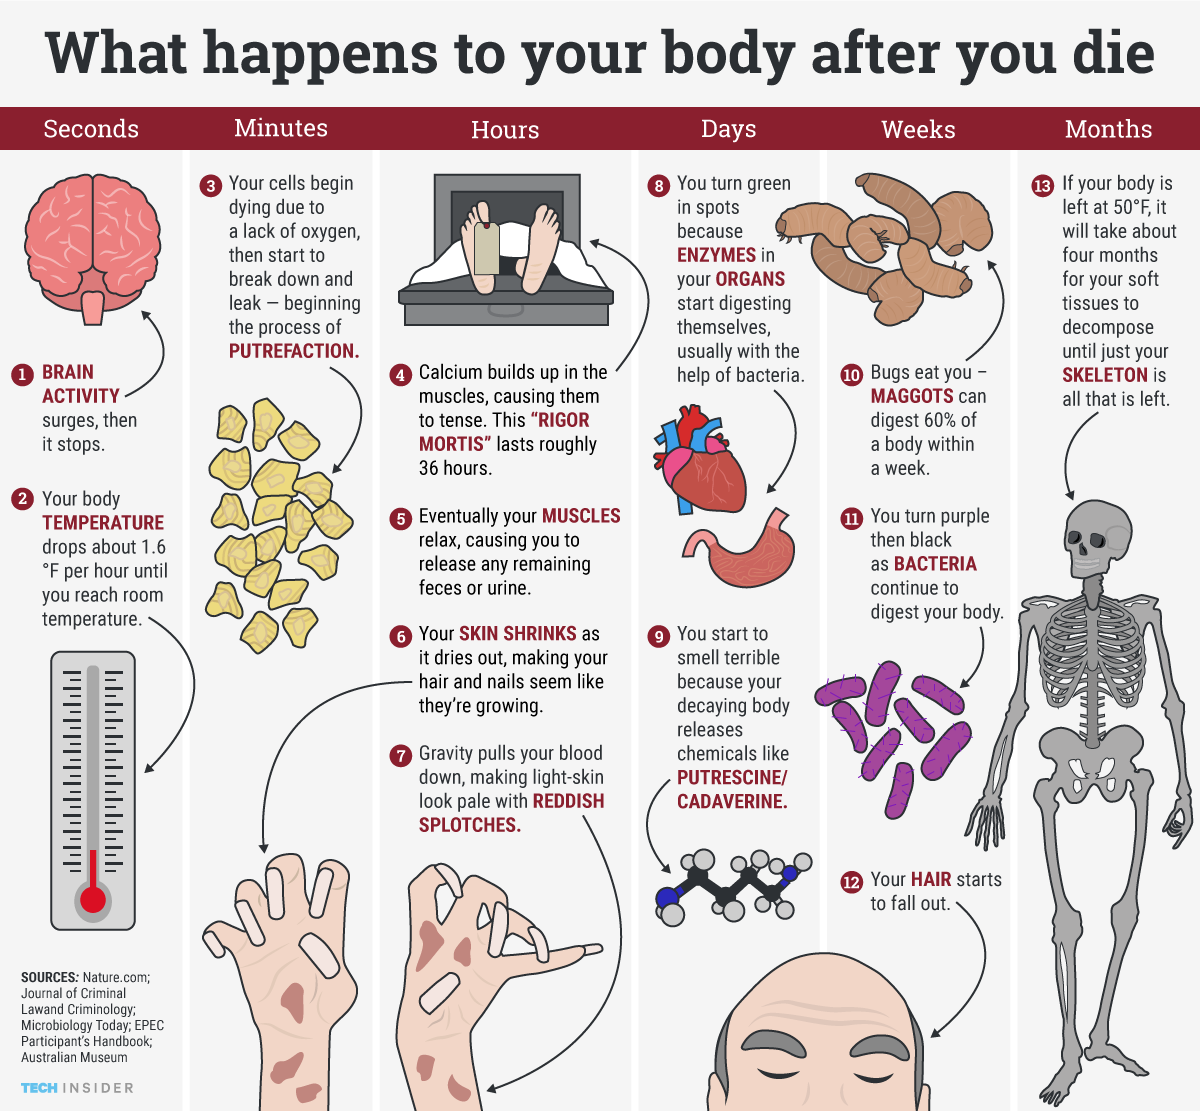 ti_graphics_what-happens-to-your-body-when-you-die